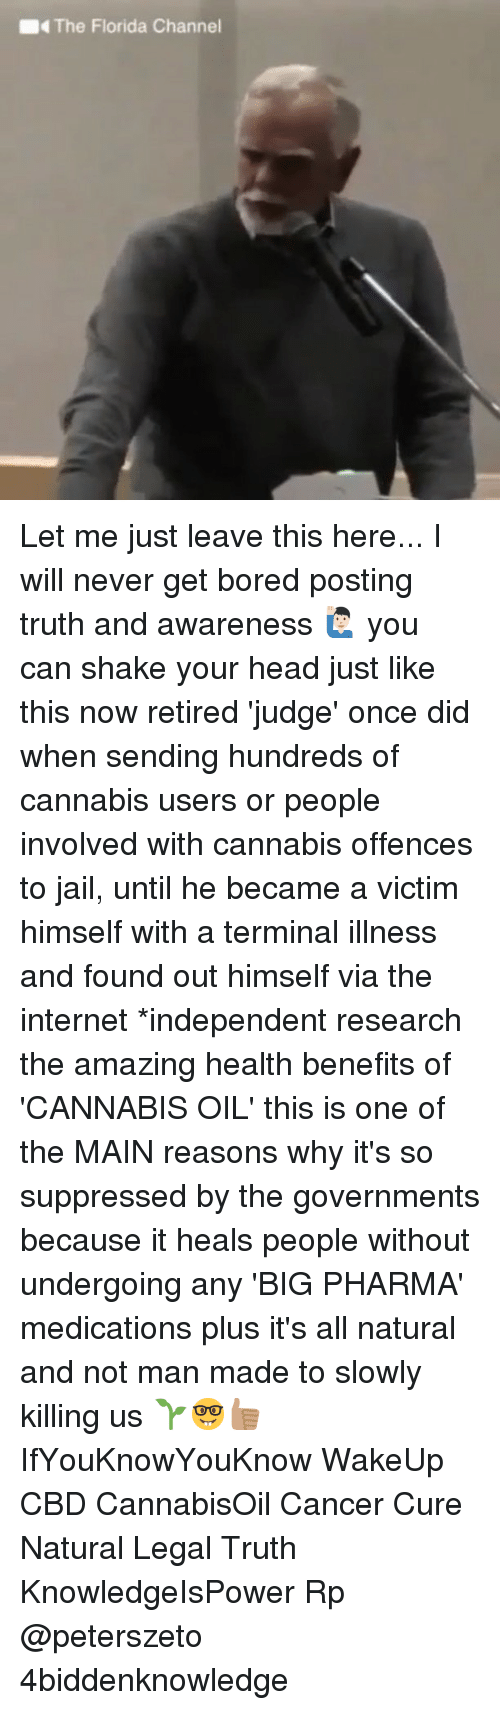 Bored, Head, and Internet: The Florida Channel Let me just leave this here... I will never get bored posting truth and awareness 🙋🏻‍♂️ you can shake your head just like this now retired 'judge' once did when sending hundreds of cannabis users or people involved with cannabis offences to jail, until he became a victim himself with a terminal illness and found out himself via the internet *independent research the amazing health benefits of 'CANNABIS OIL' this is one of the MAIN reasons why it's so suppressed by the governments because it heals people without undergoing any 'BIG PHARMA' medications plus it's all natural and not man made to slowly killing us 🌱🤓👍🏽 IfYouKnowYouKnow WakeUp CBD CannabisOil Cancer Cure Natural Legal Truth KnowledgeIsPower Rp @peterszeto 4biddenknowledge